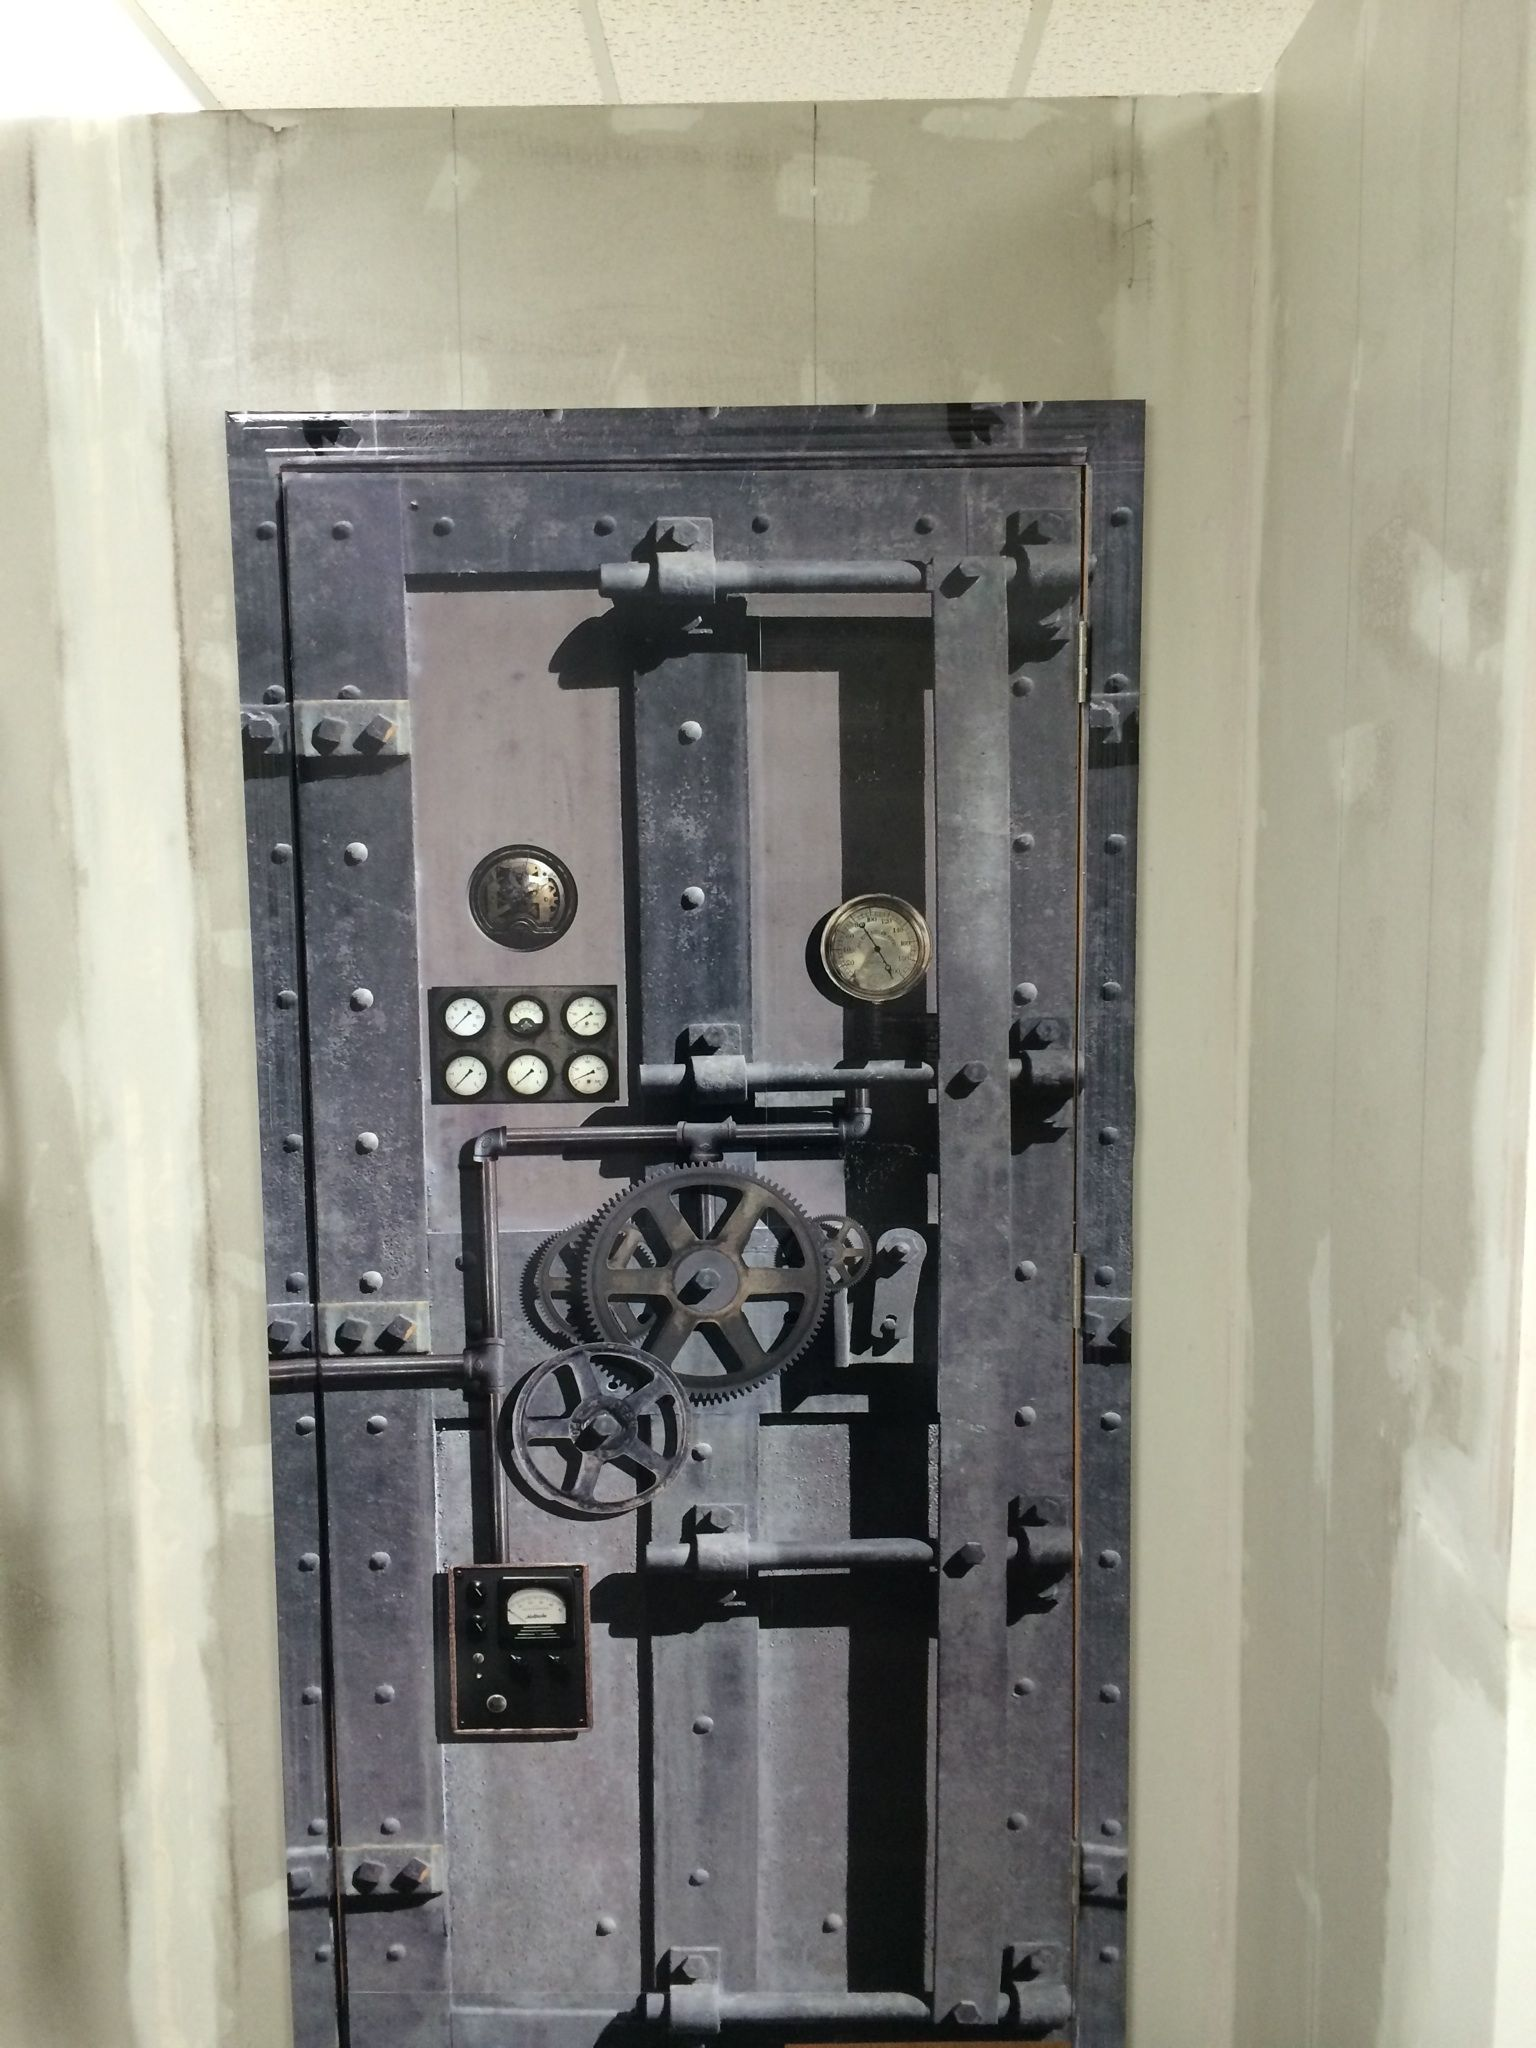 Melvin Just install a Ste&unk Door wrap. If you want to order one click & Melvin Just install a Steampunk Door wrap. If you want to order one ...